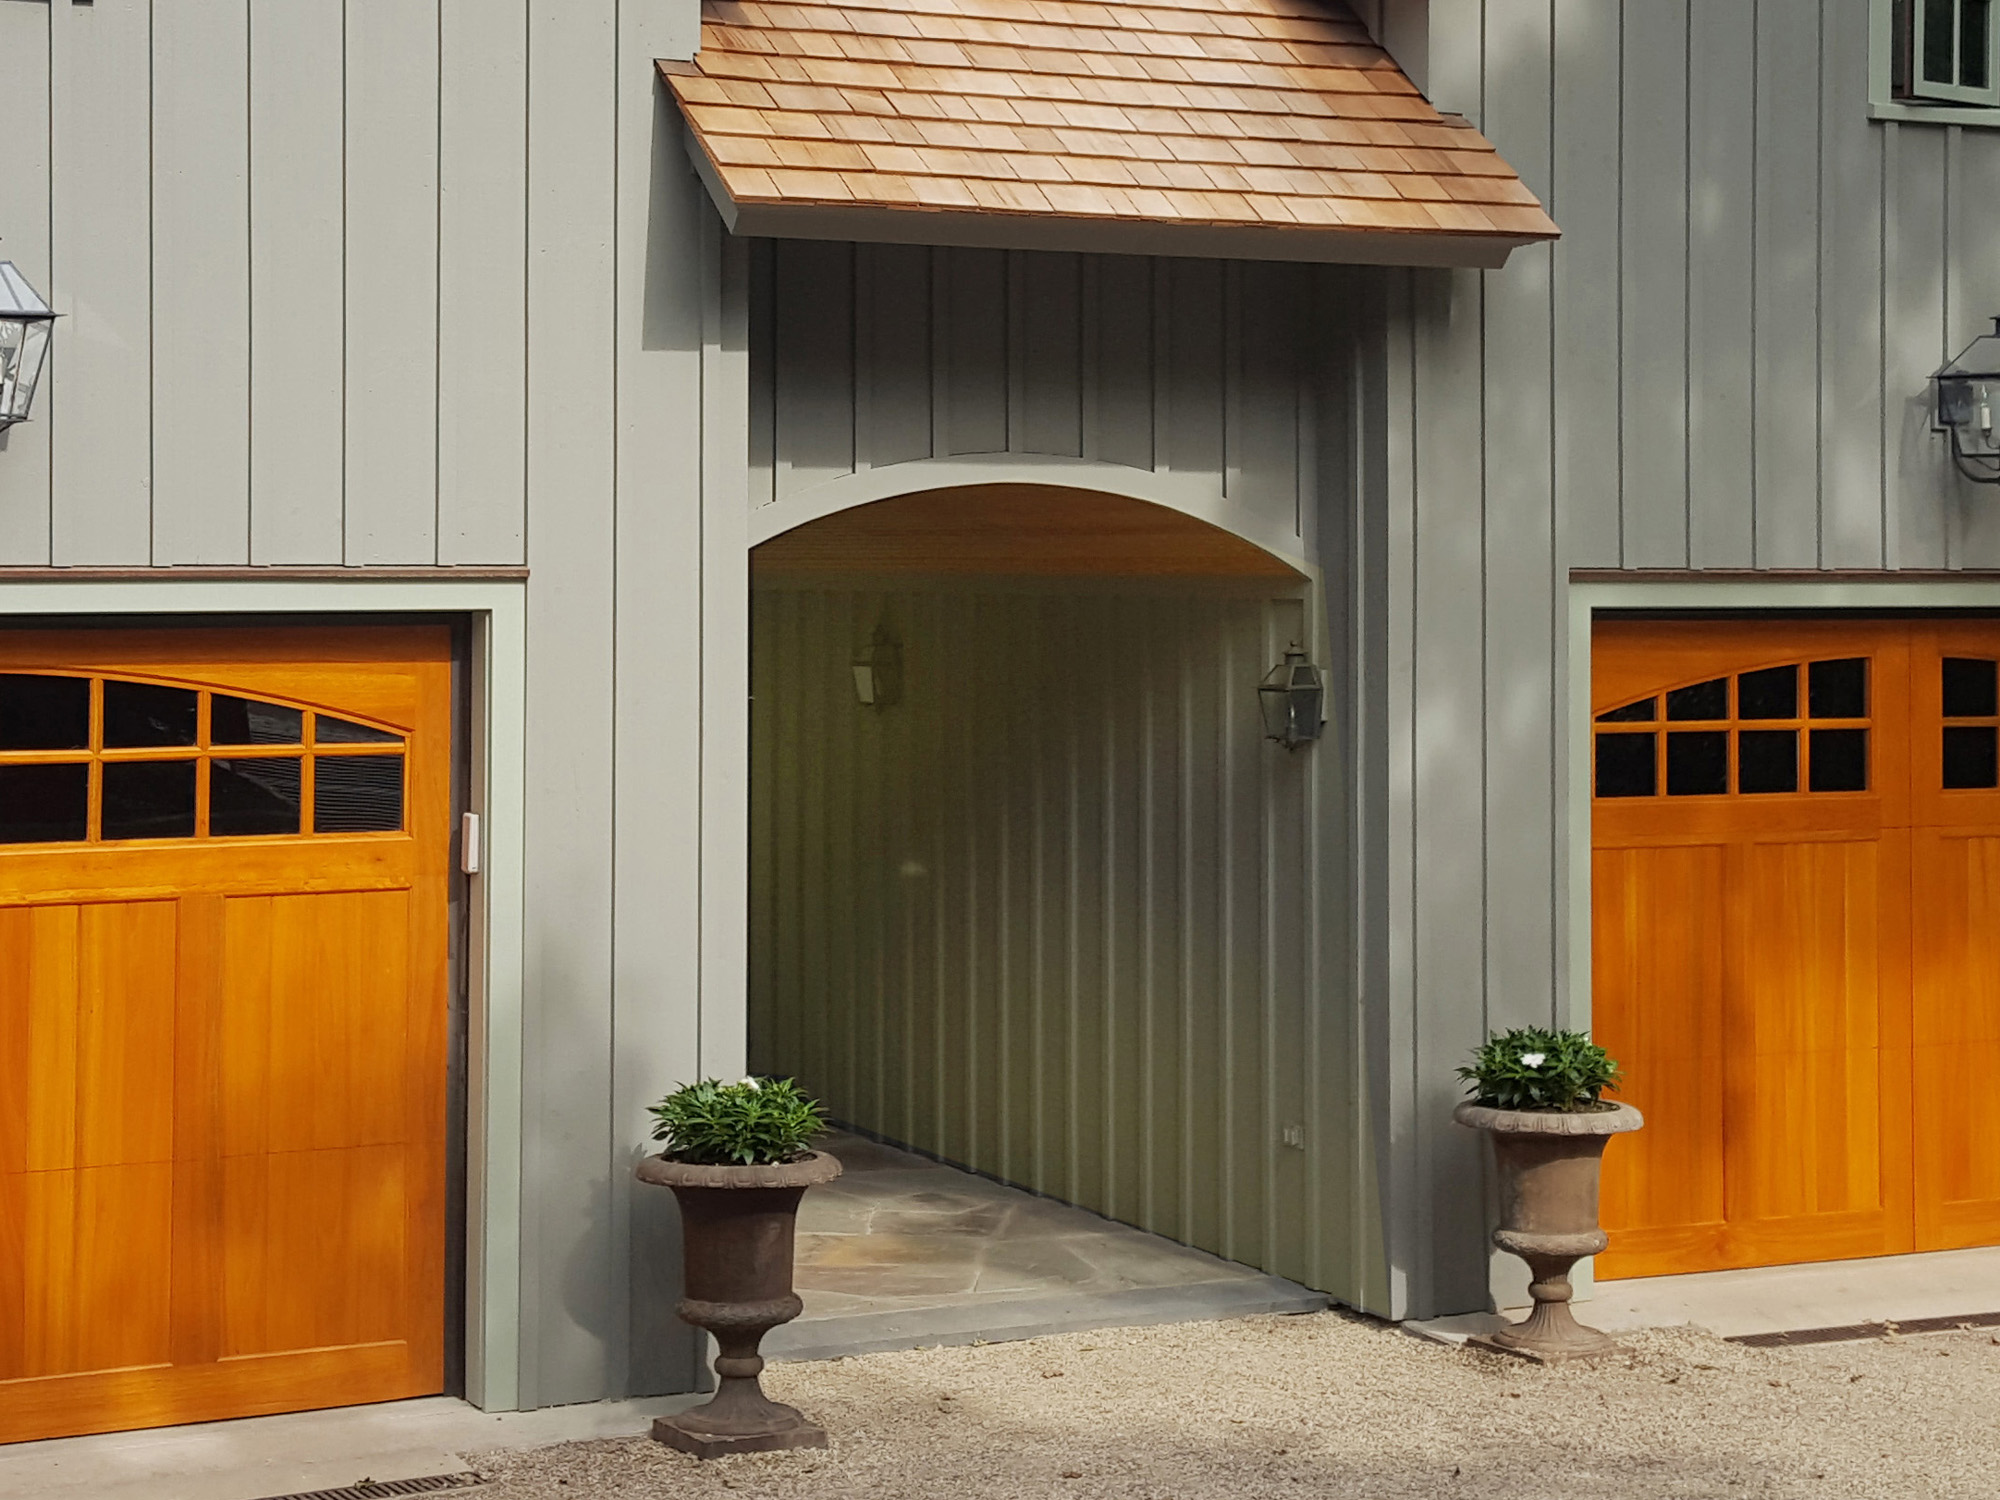 Ridgefield-carriage-house_tunnel-cropped.jpg